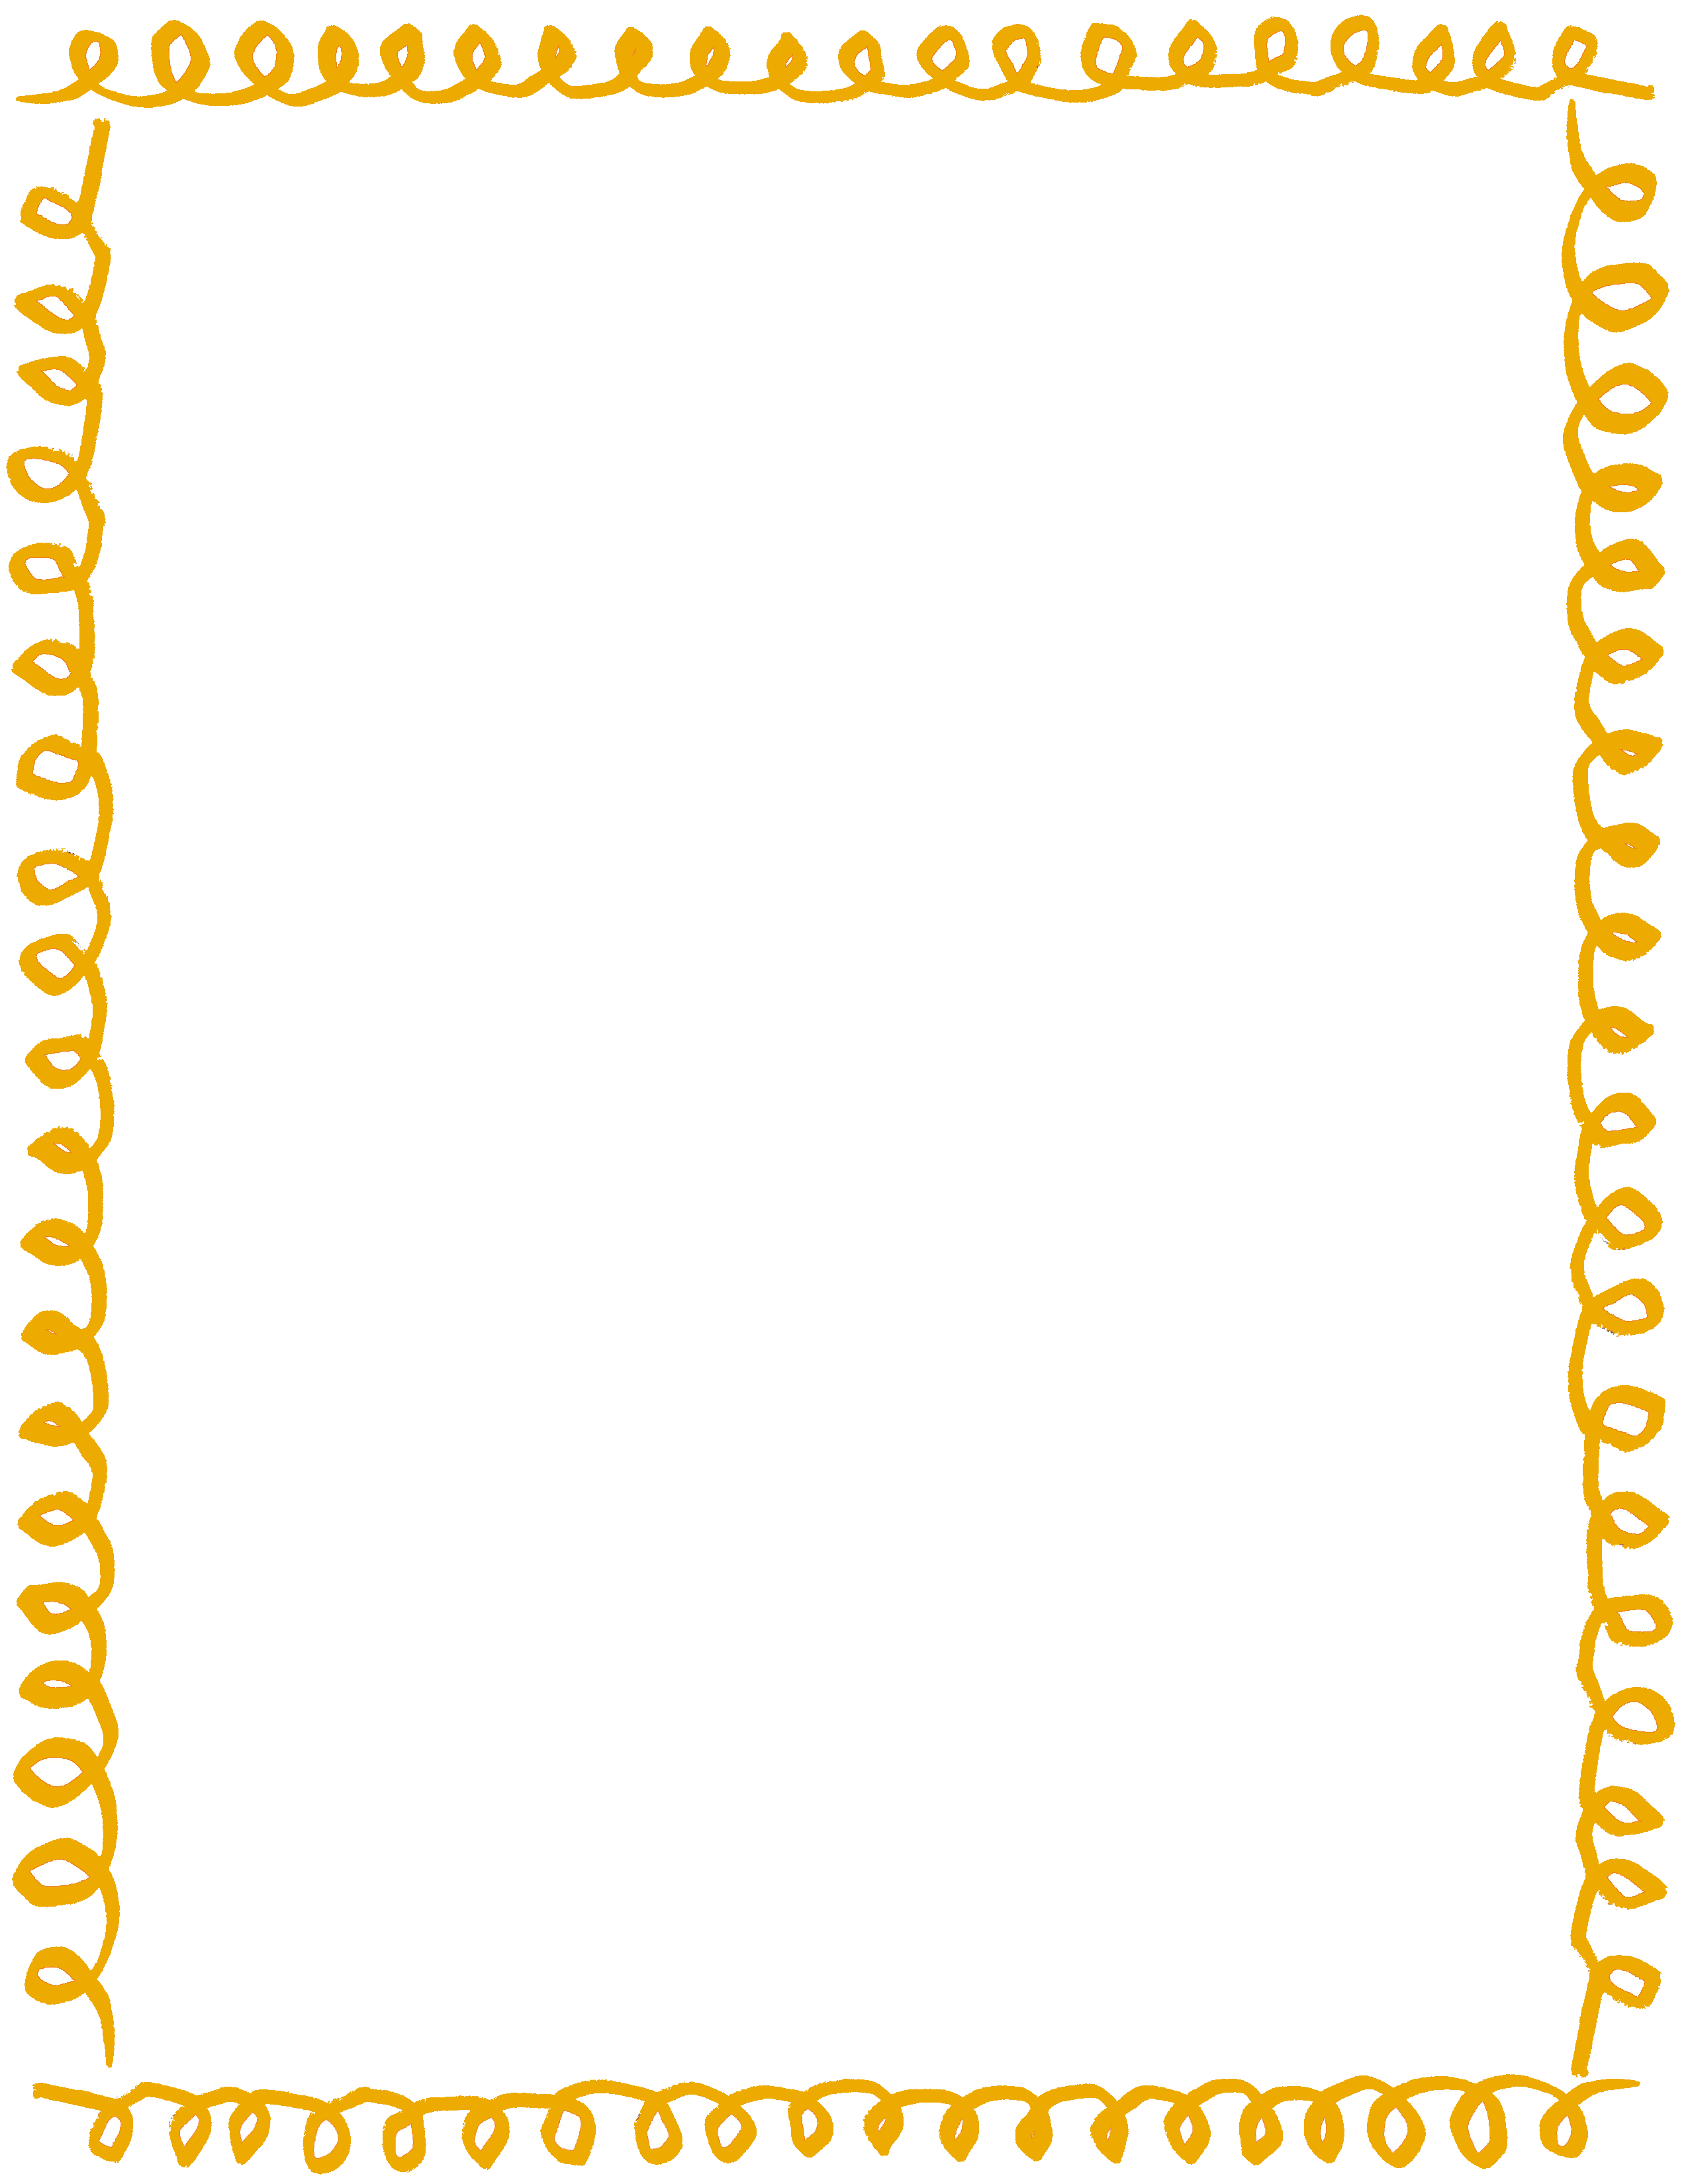 Borders clipart png. Collection of cute